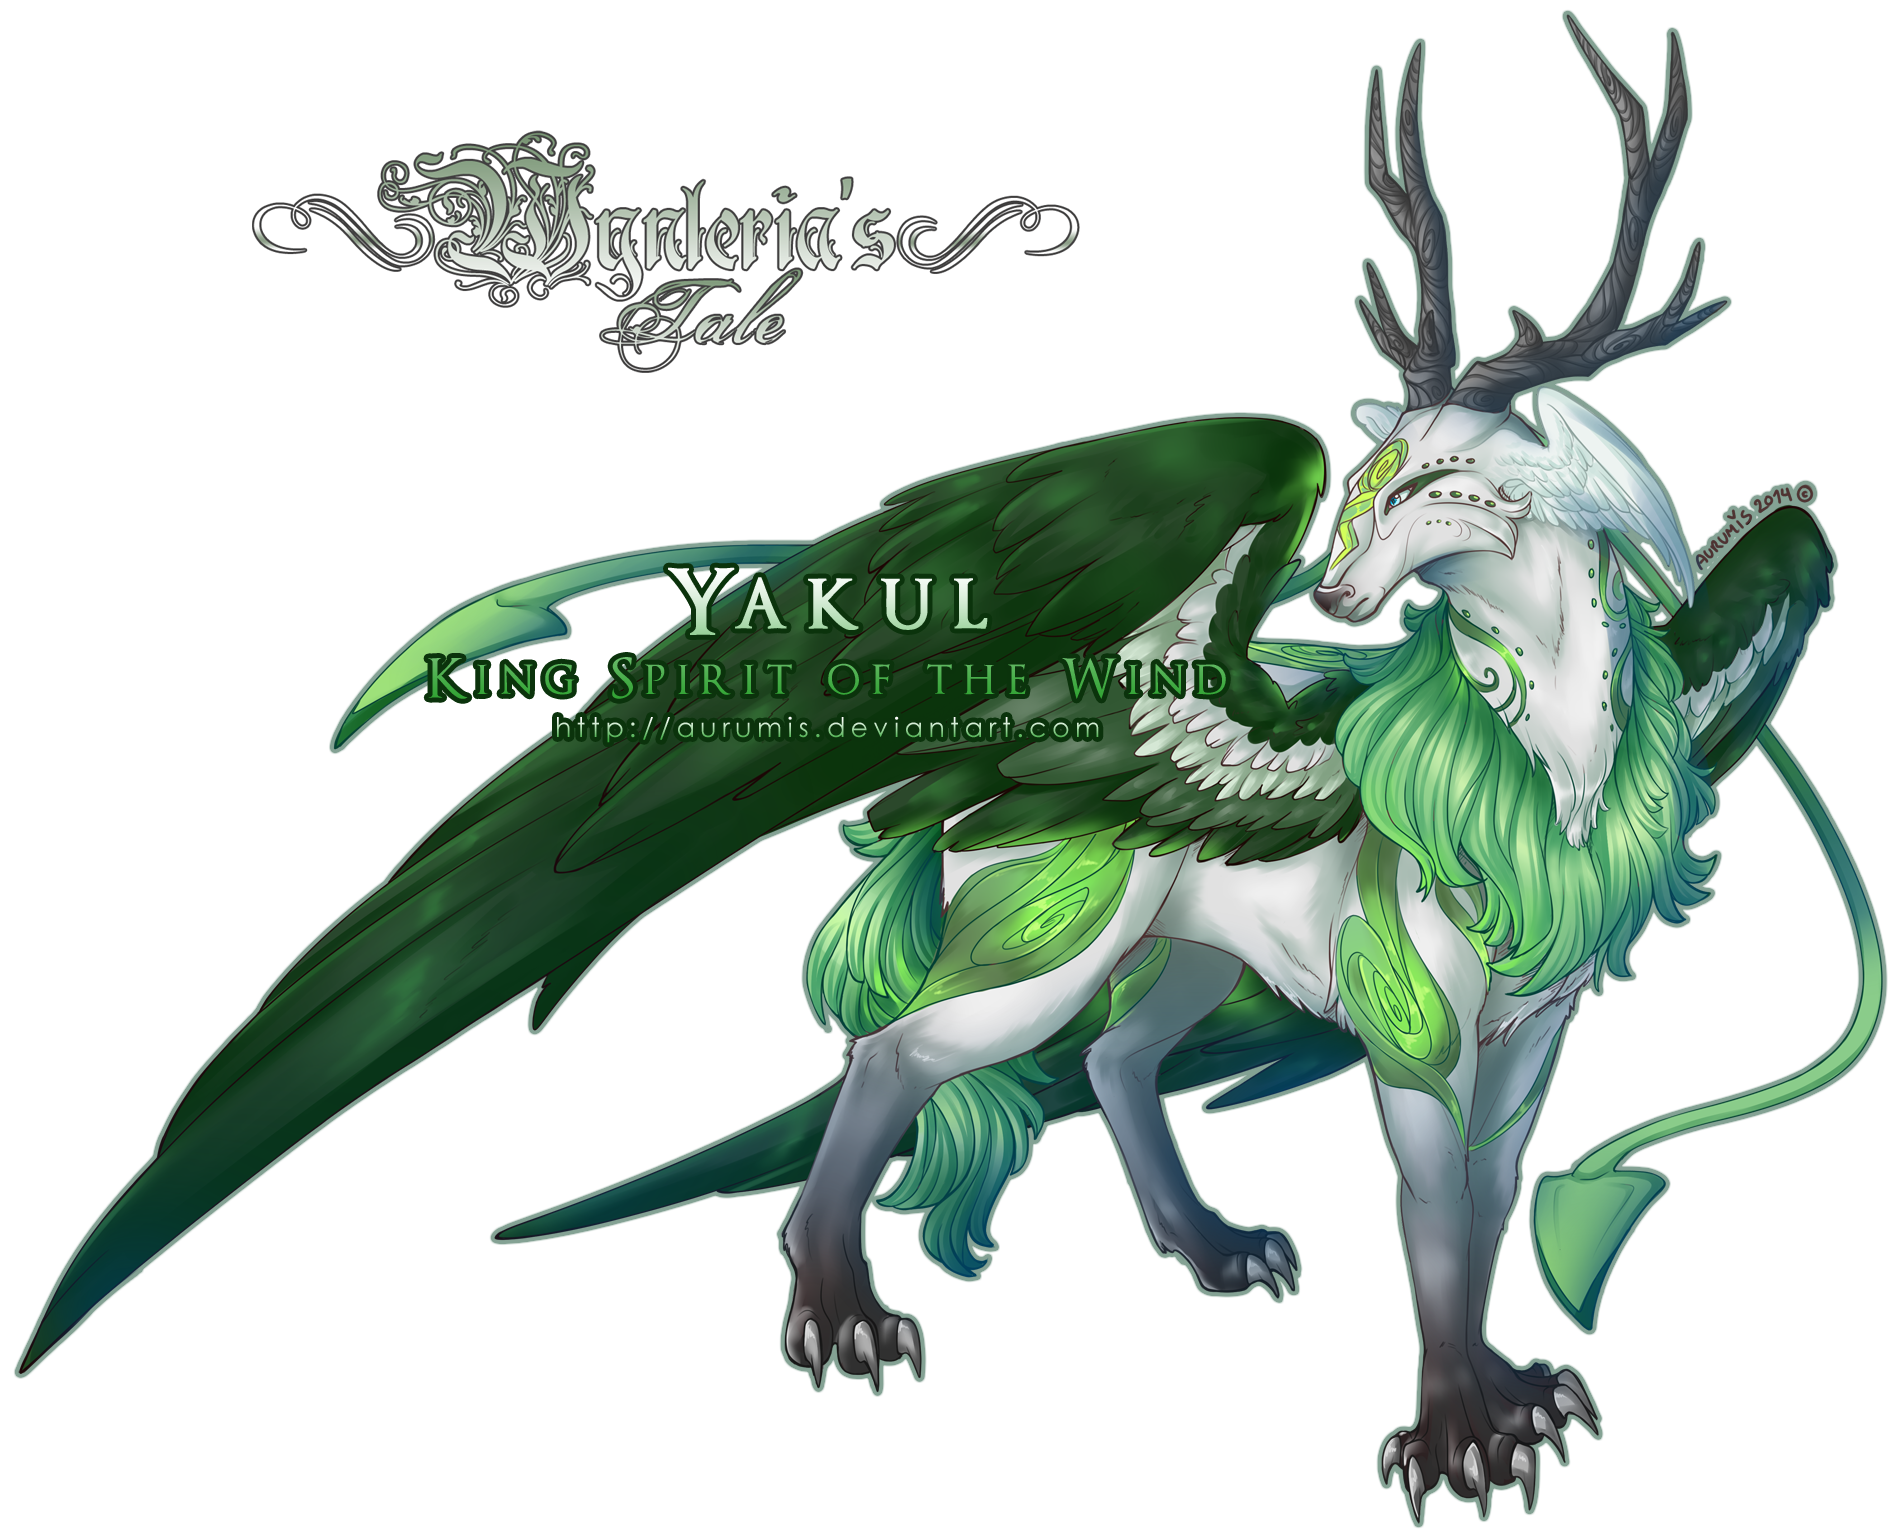 WynTa: Yakul - King Spirit of the Wind by Aurumis